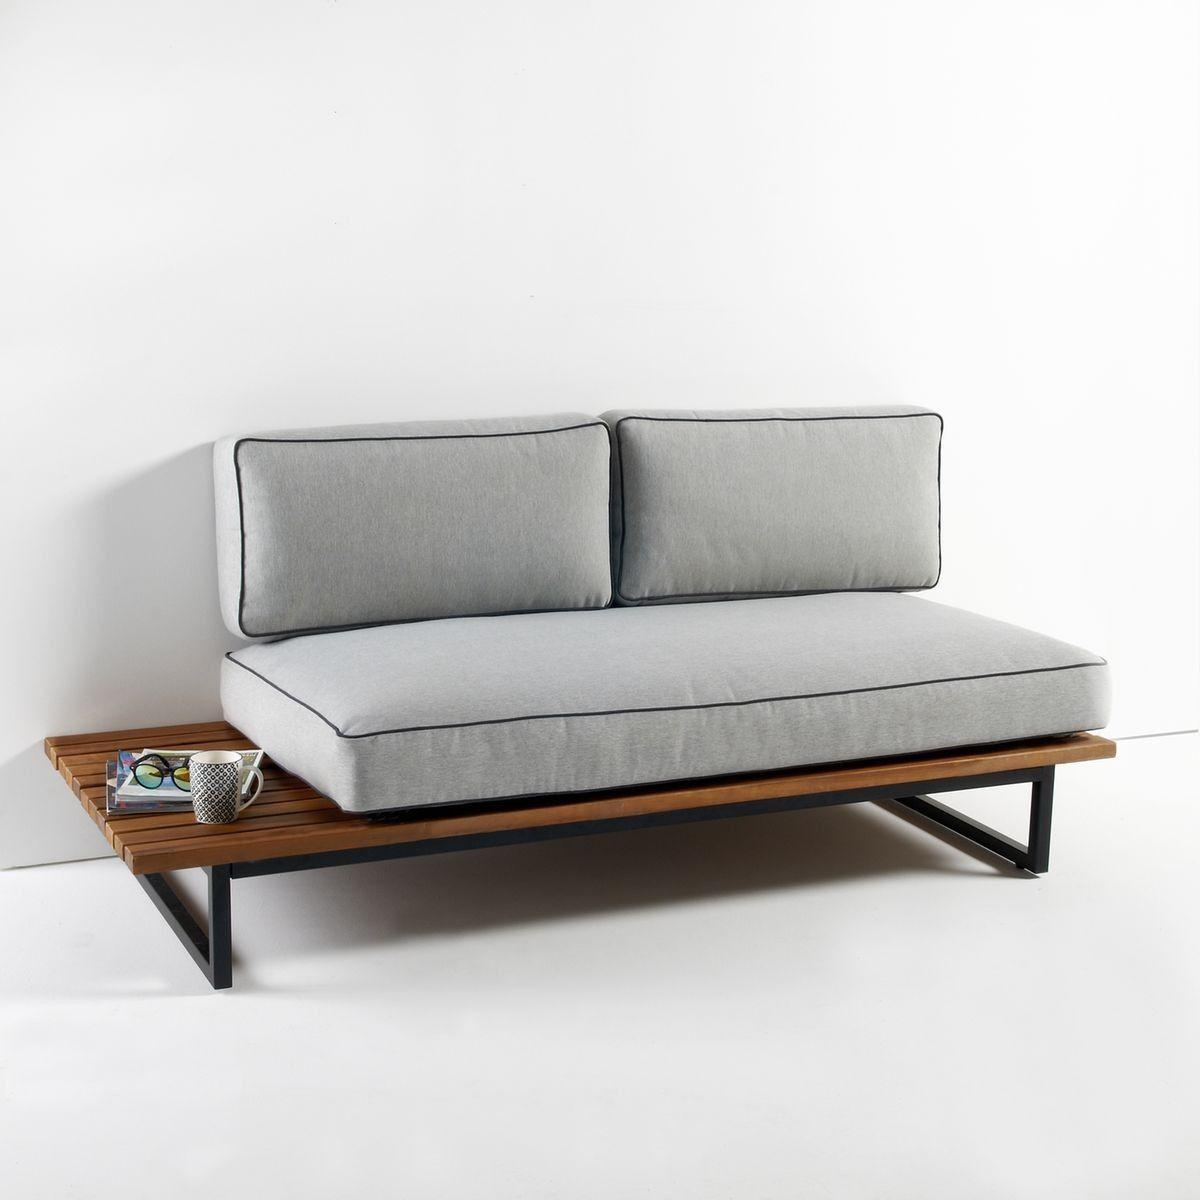 Interior Design Addict Chaise Lounger By Mvngmtns Mobilier De